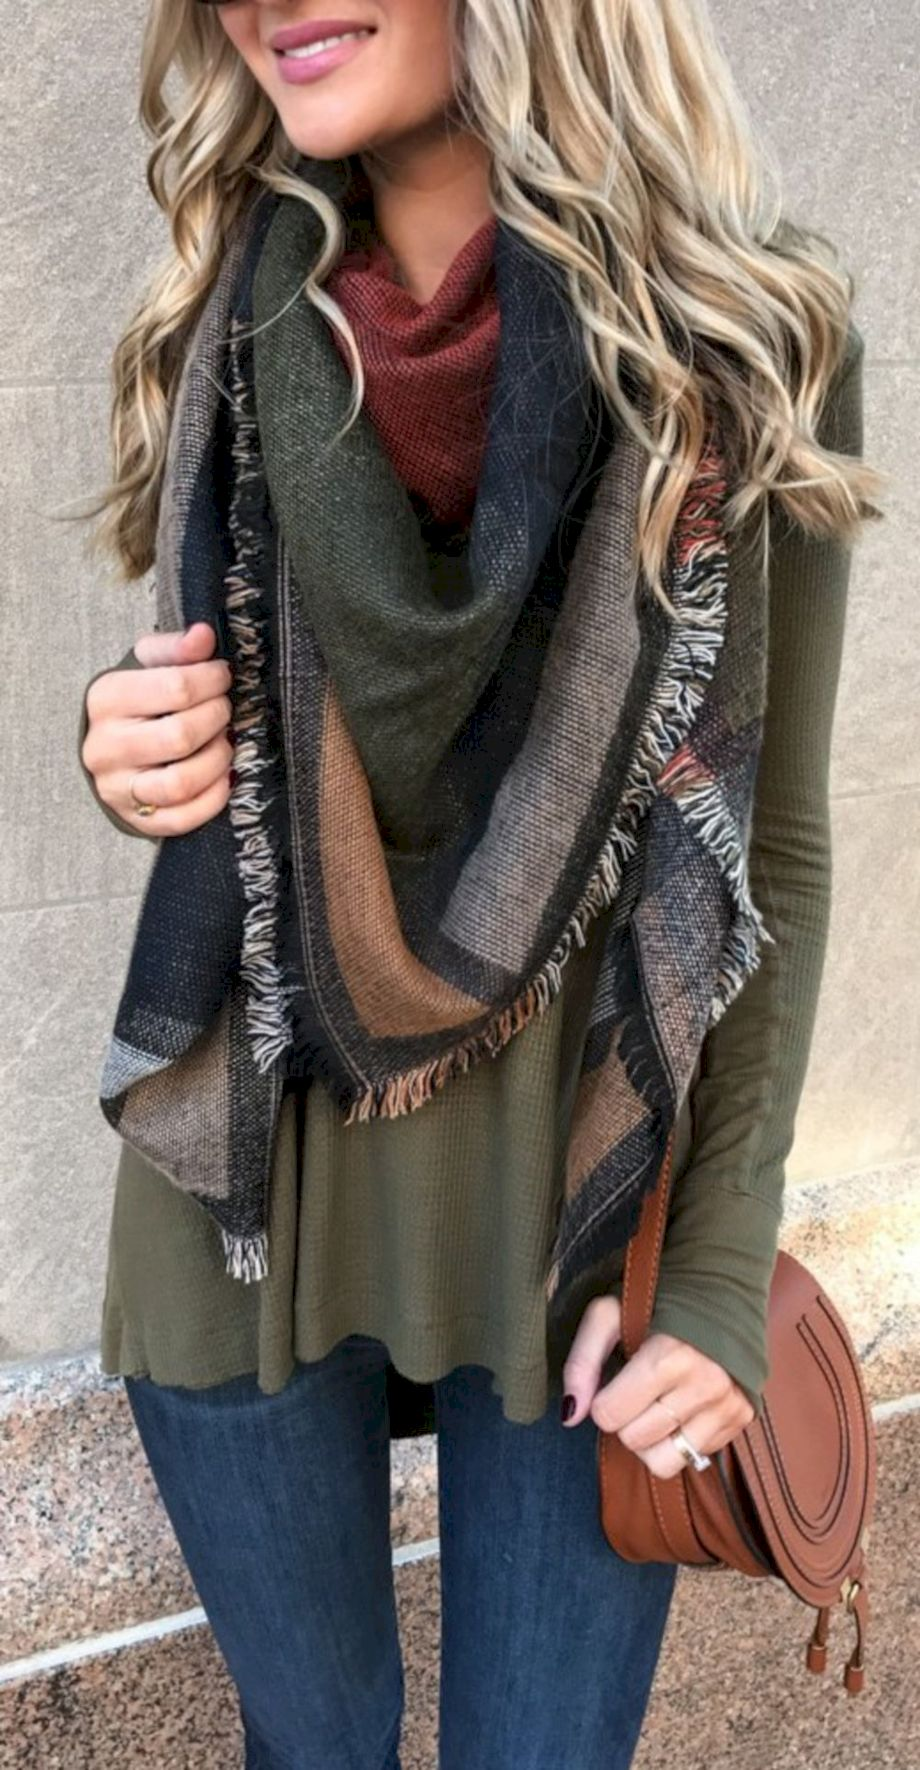 Cardigan outfit 53